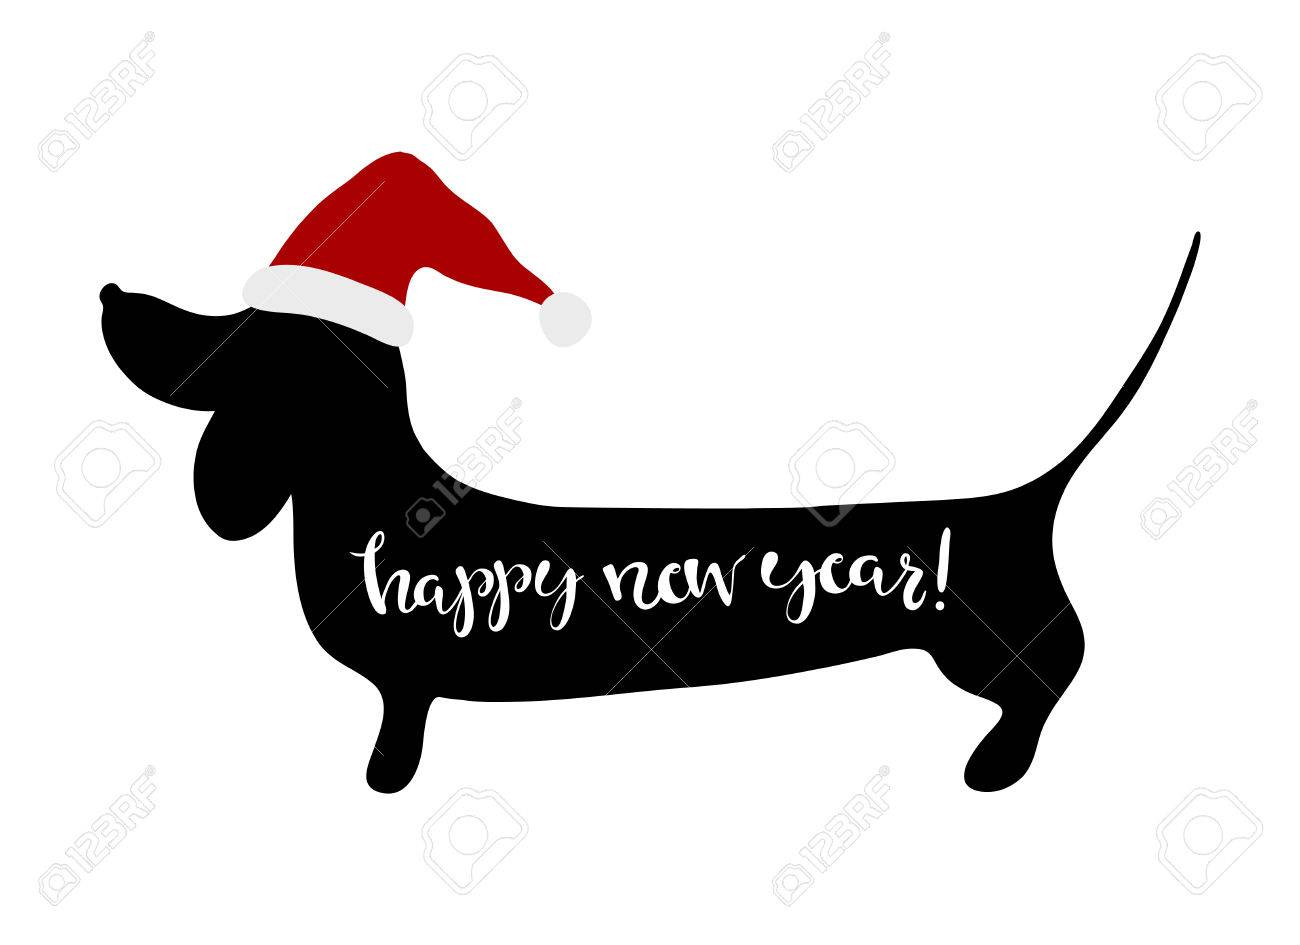 Happy New Year Greeting Card Dachshund Hand Written Lettering